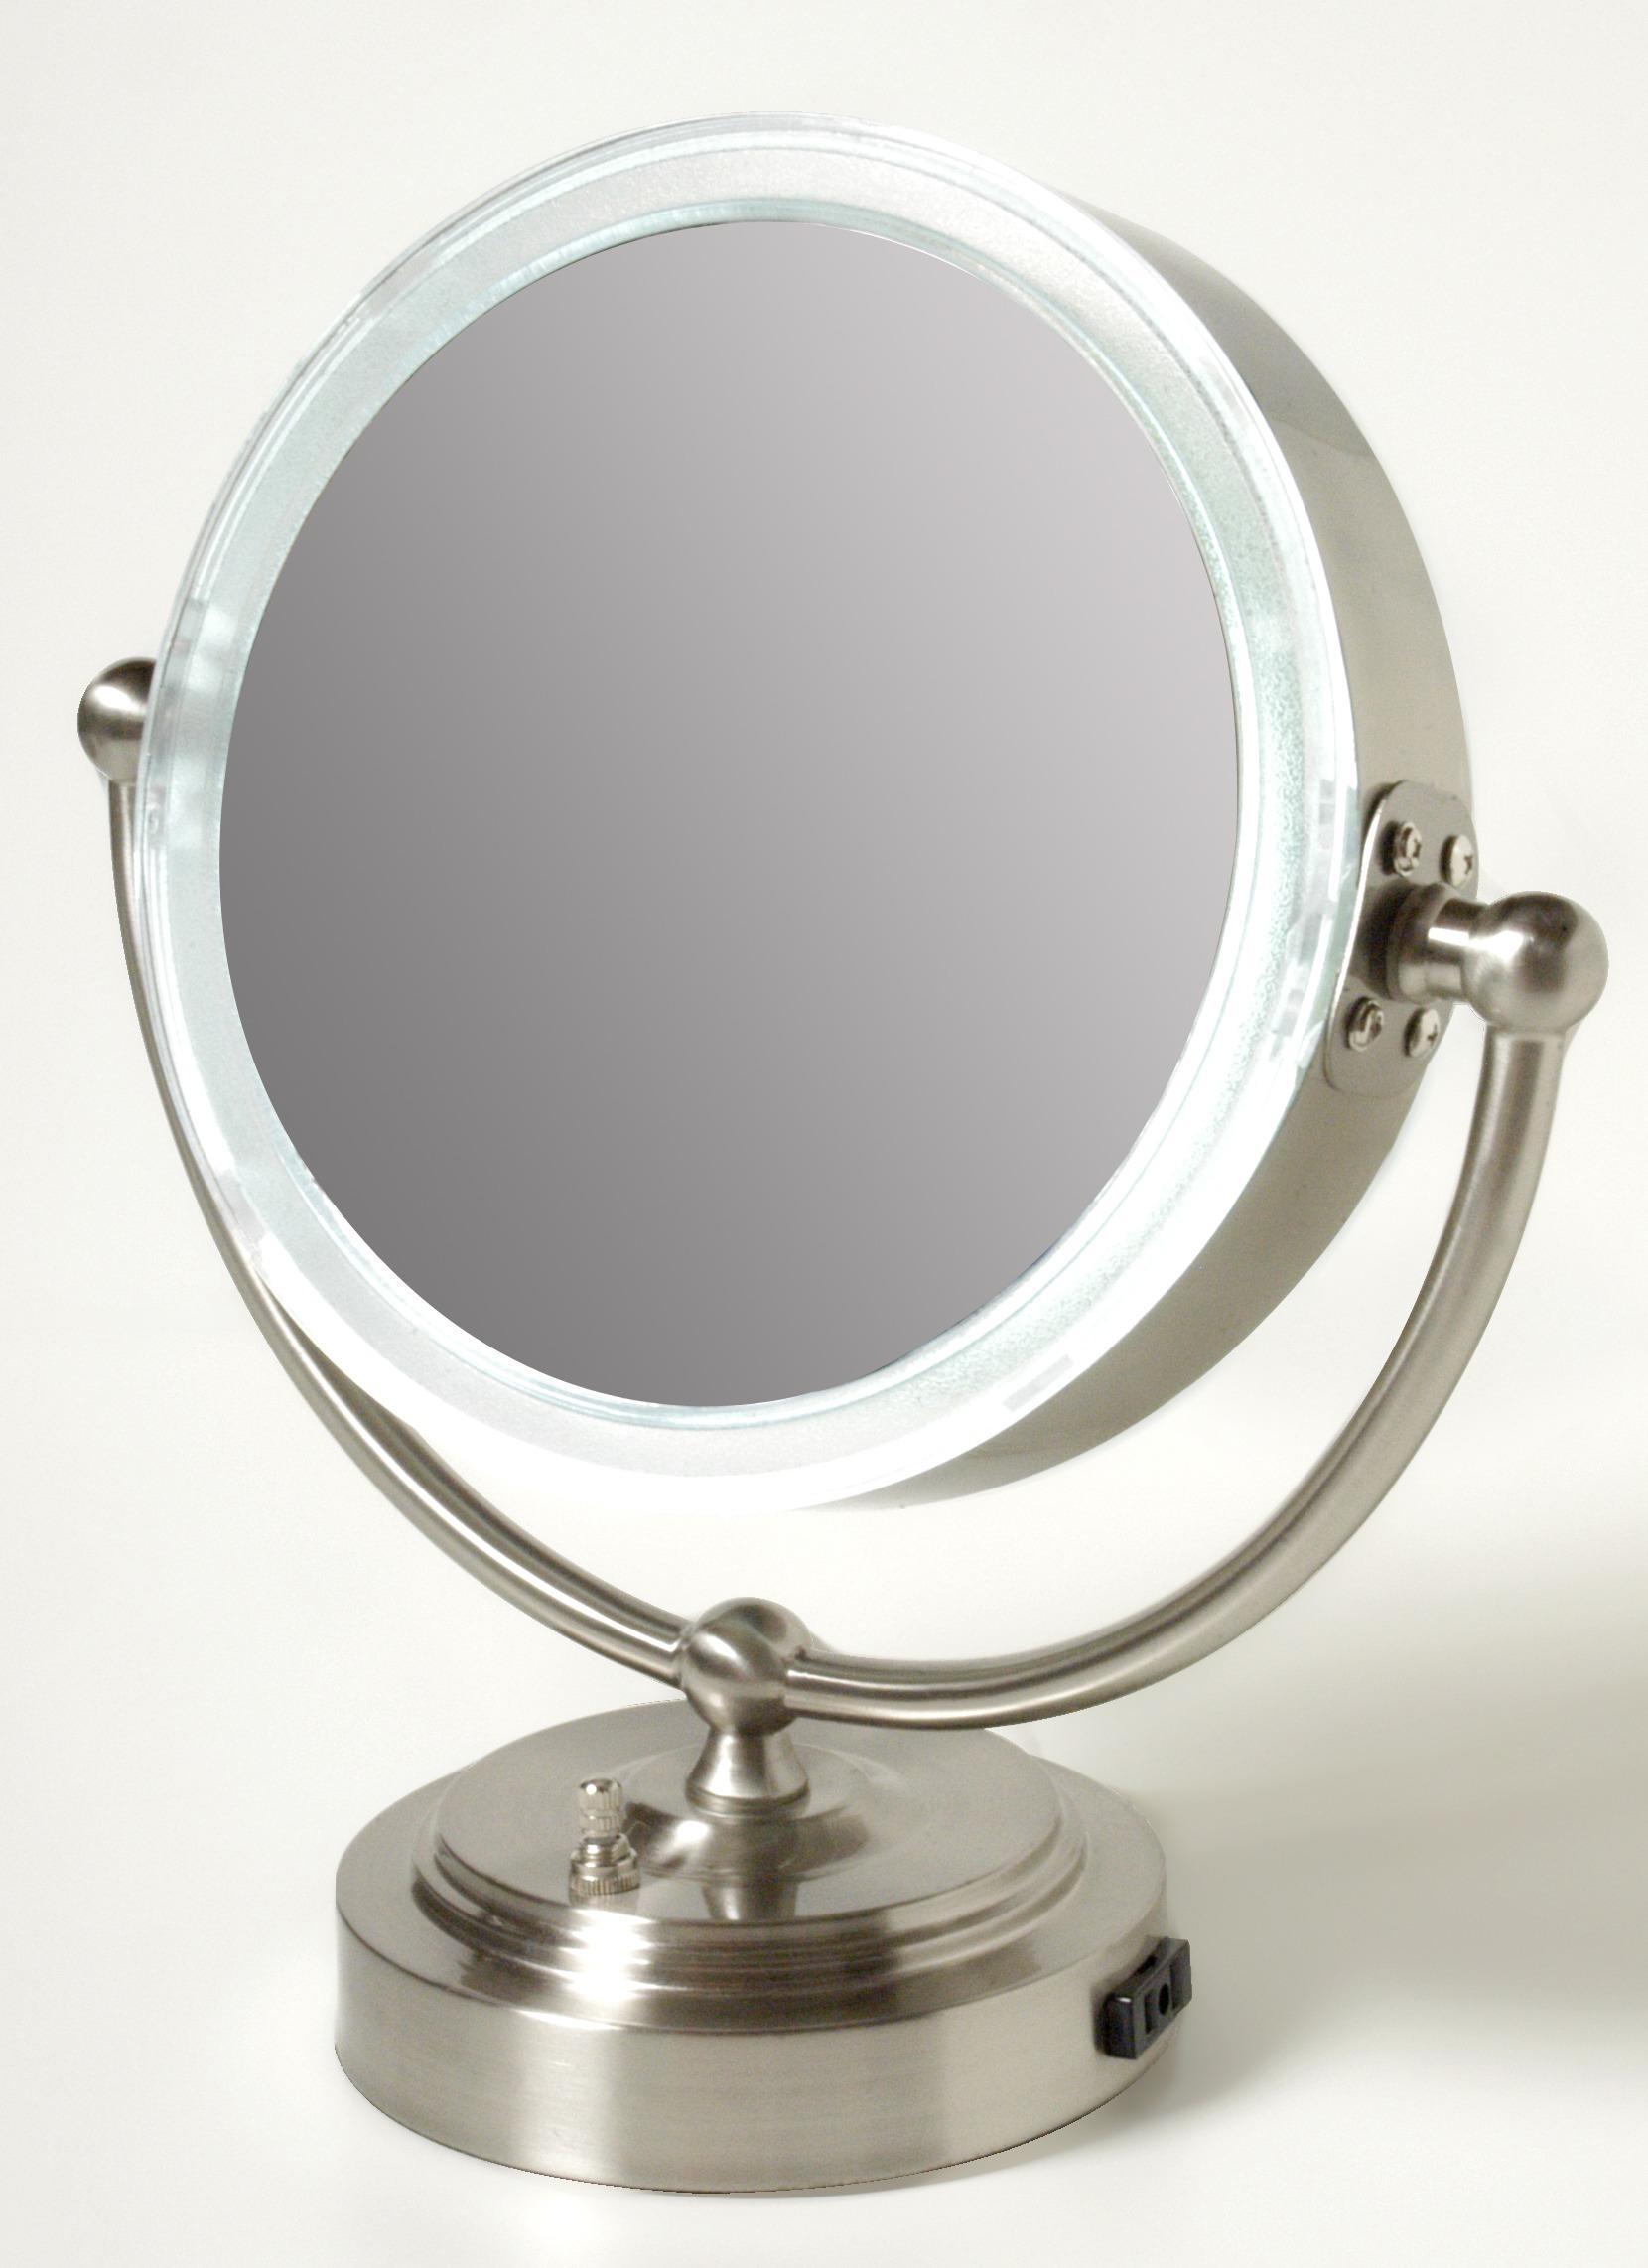 Accessories: Beautiful Conair Makeup Mirror For Your Perfect Inside Lit Makeup Mirrors (View 2 of 20)